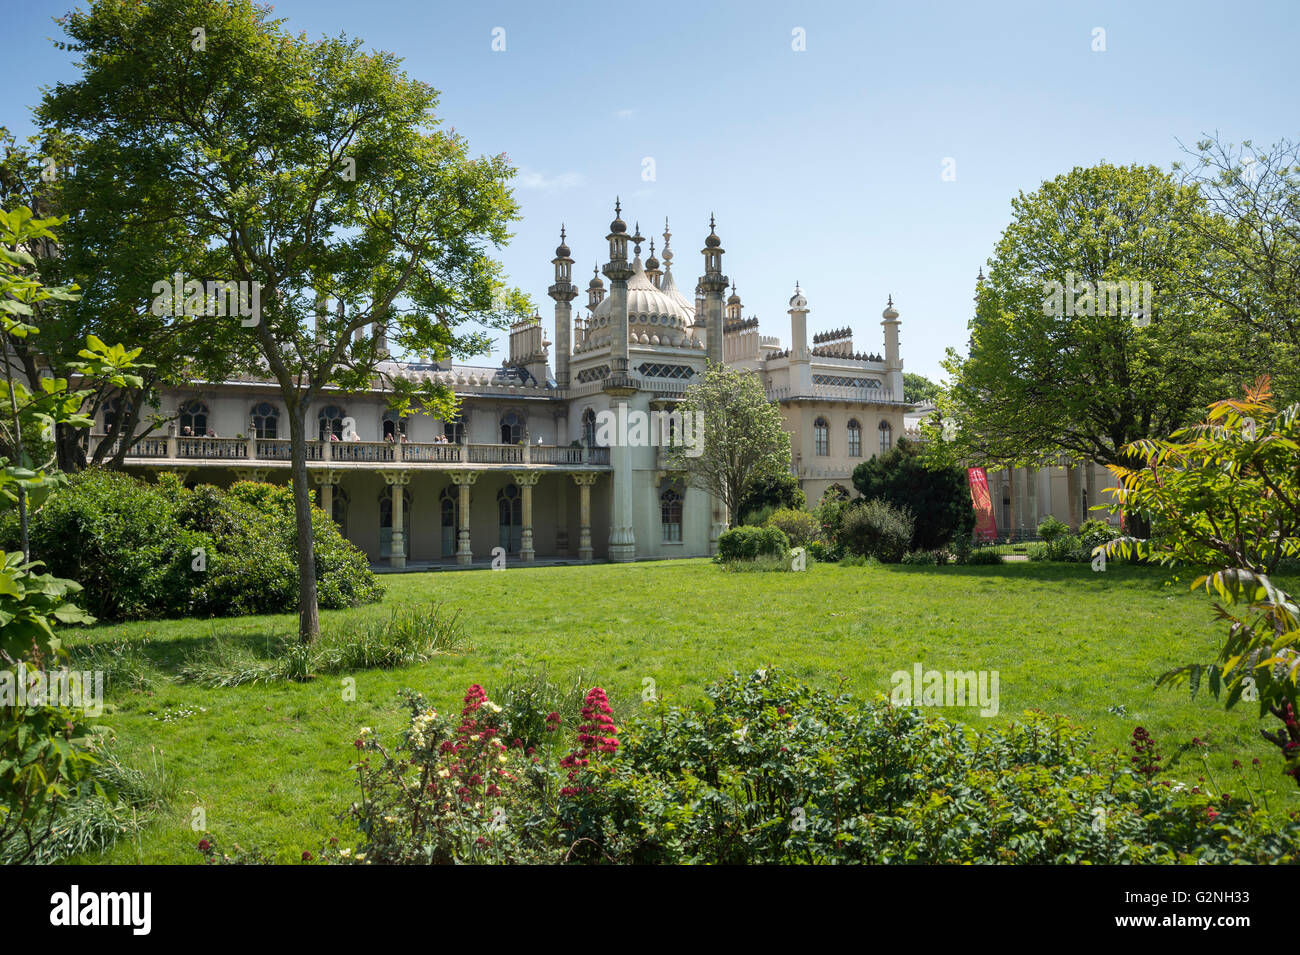 Brighton Pavillion - Stock Image